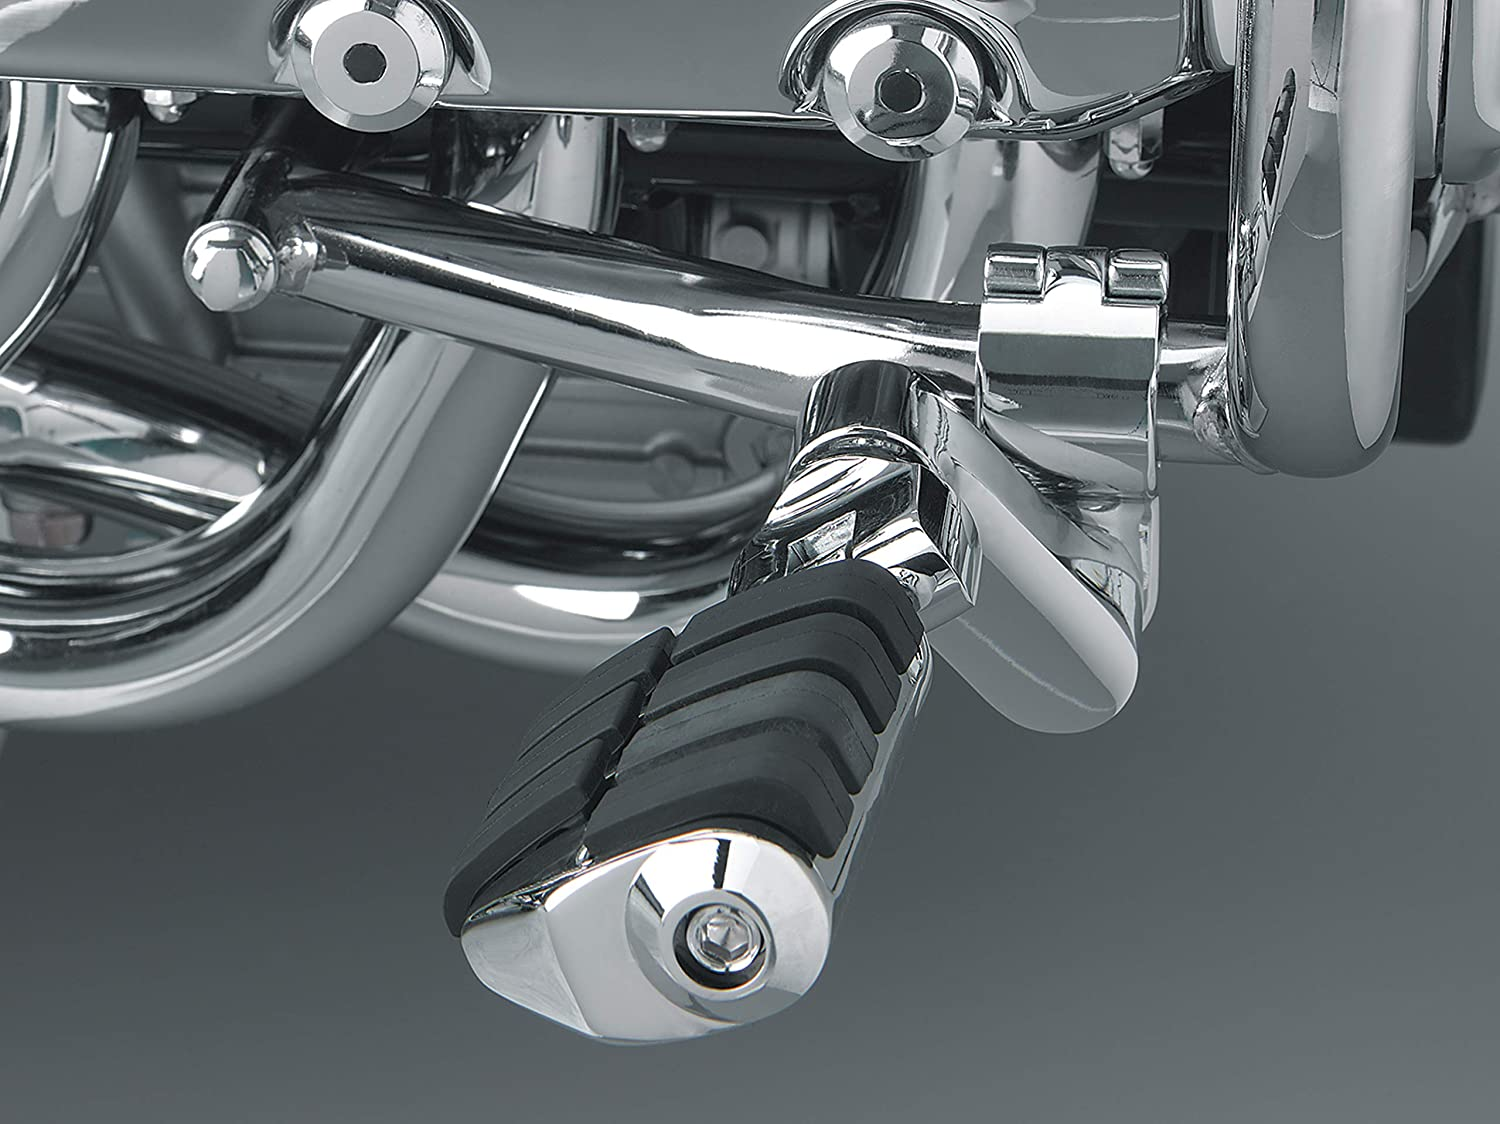 Chrome Engine Guards//Tubing 1.35 1 Pair Kuryakyn 7933 Motorcycle Foot Controls: Offset Large ISO Highway Pegs with Magnum Quick Clamps for 1-11//32